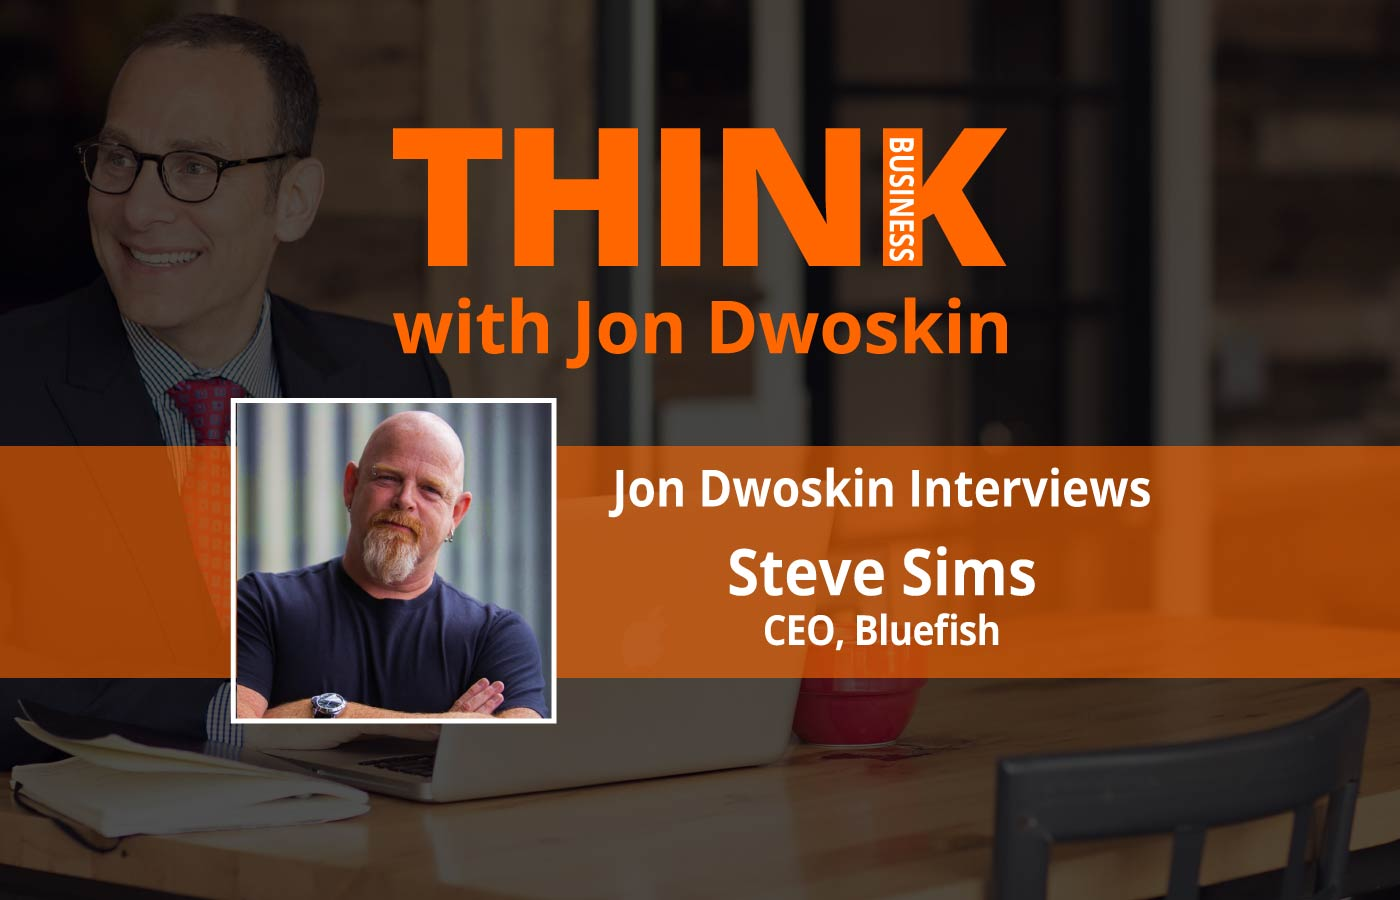 THINK Business Podcast: Jon Dwoskin Interviews Steve Sims, CEO of Bluefish